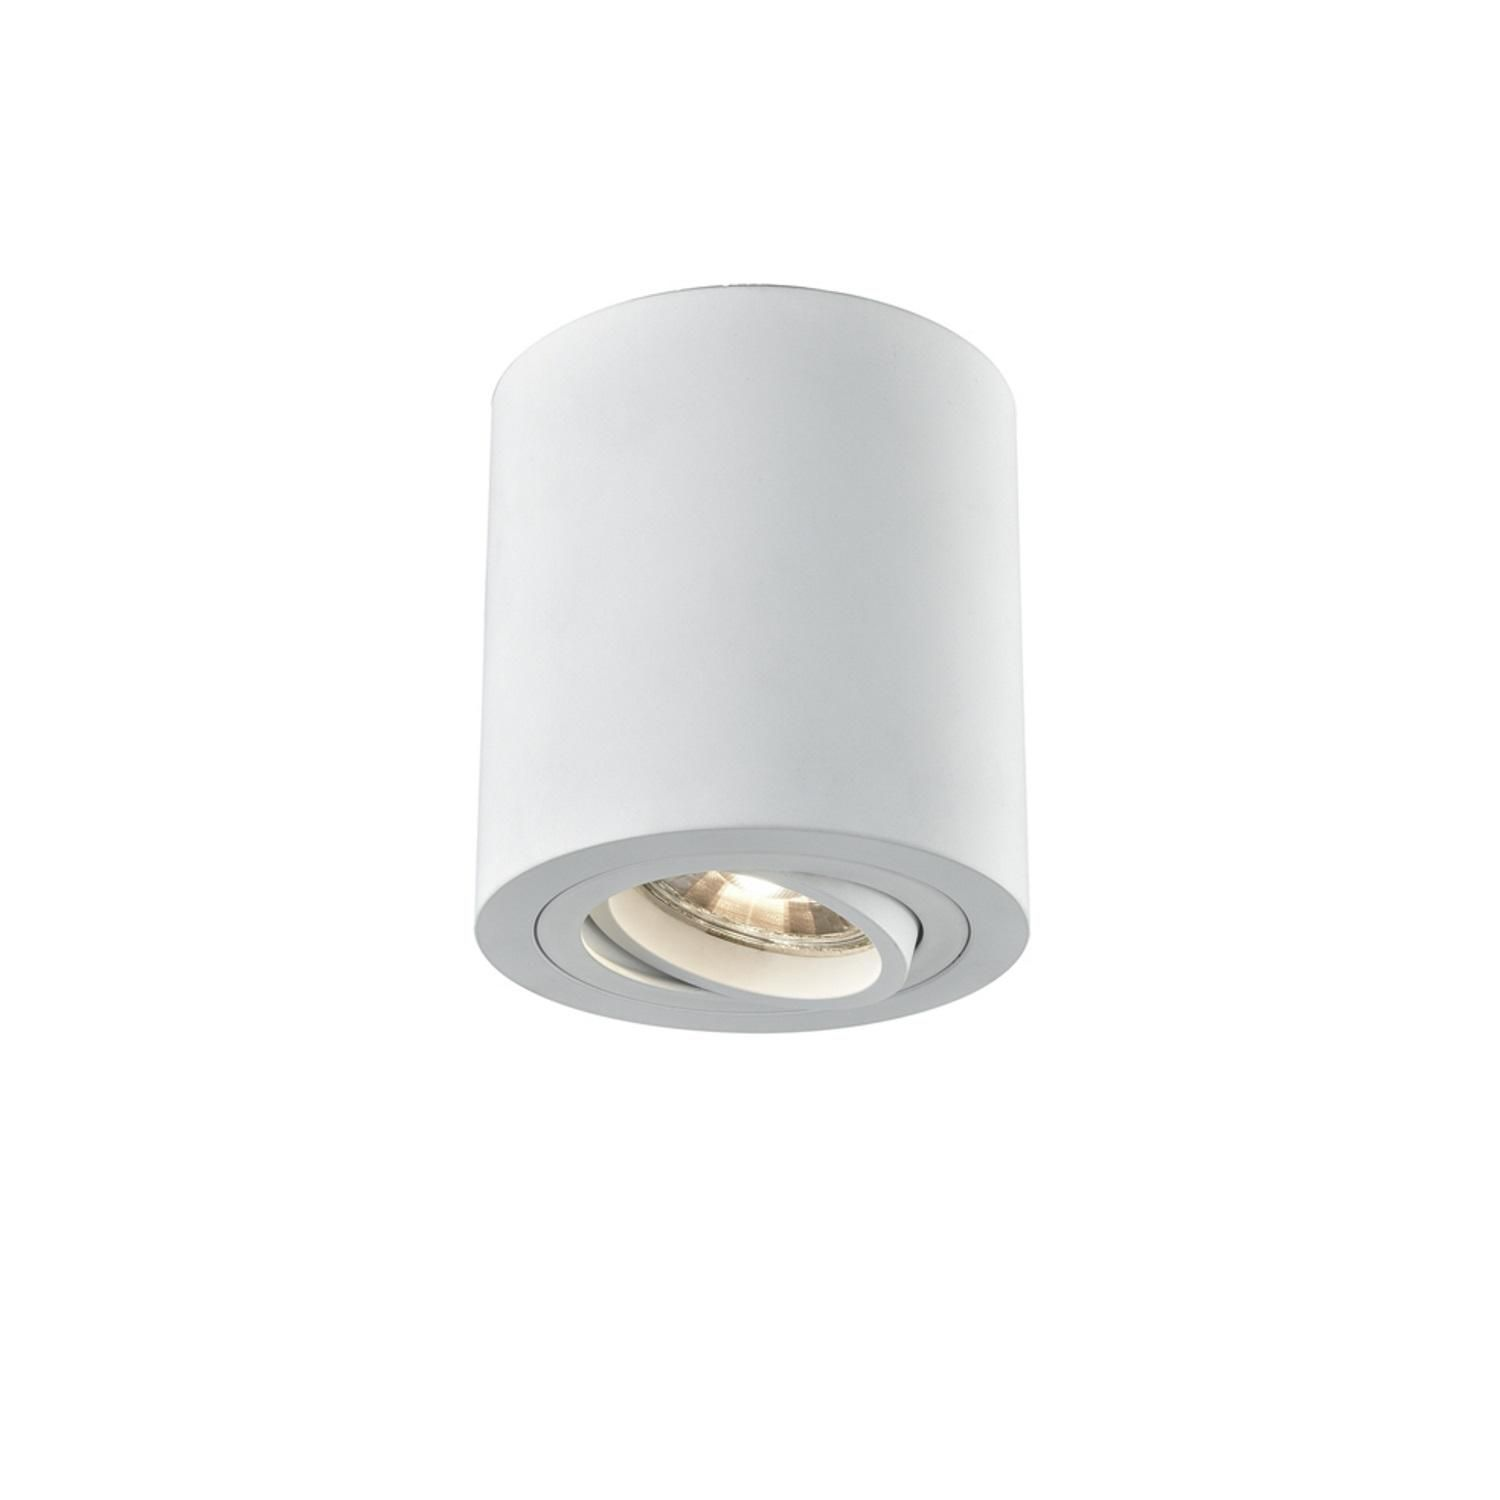 Surface Mounted Led Adjustable Downlight The Lighting Superstore